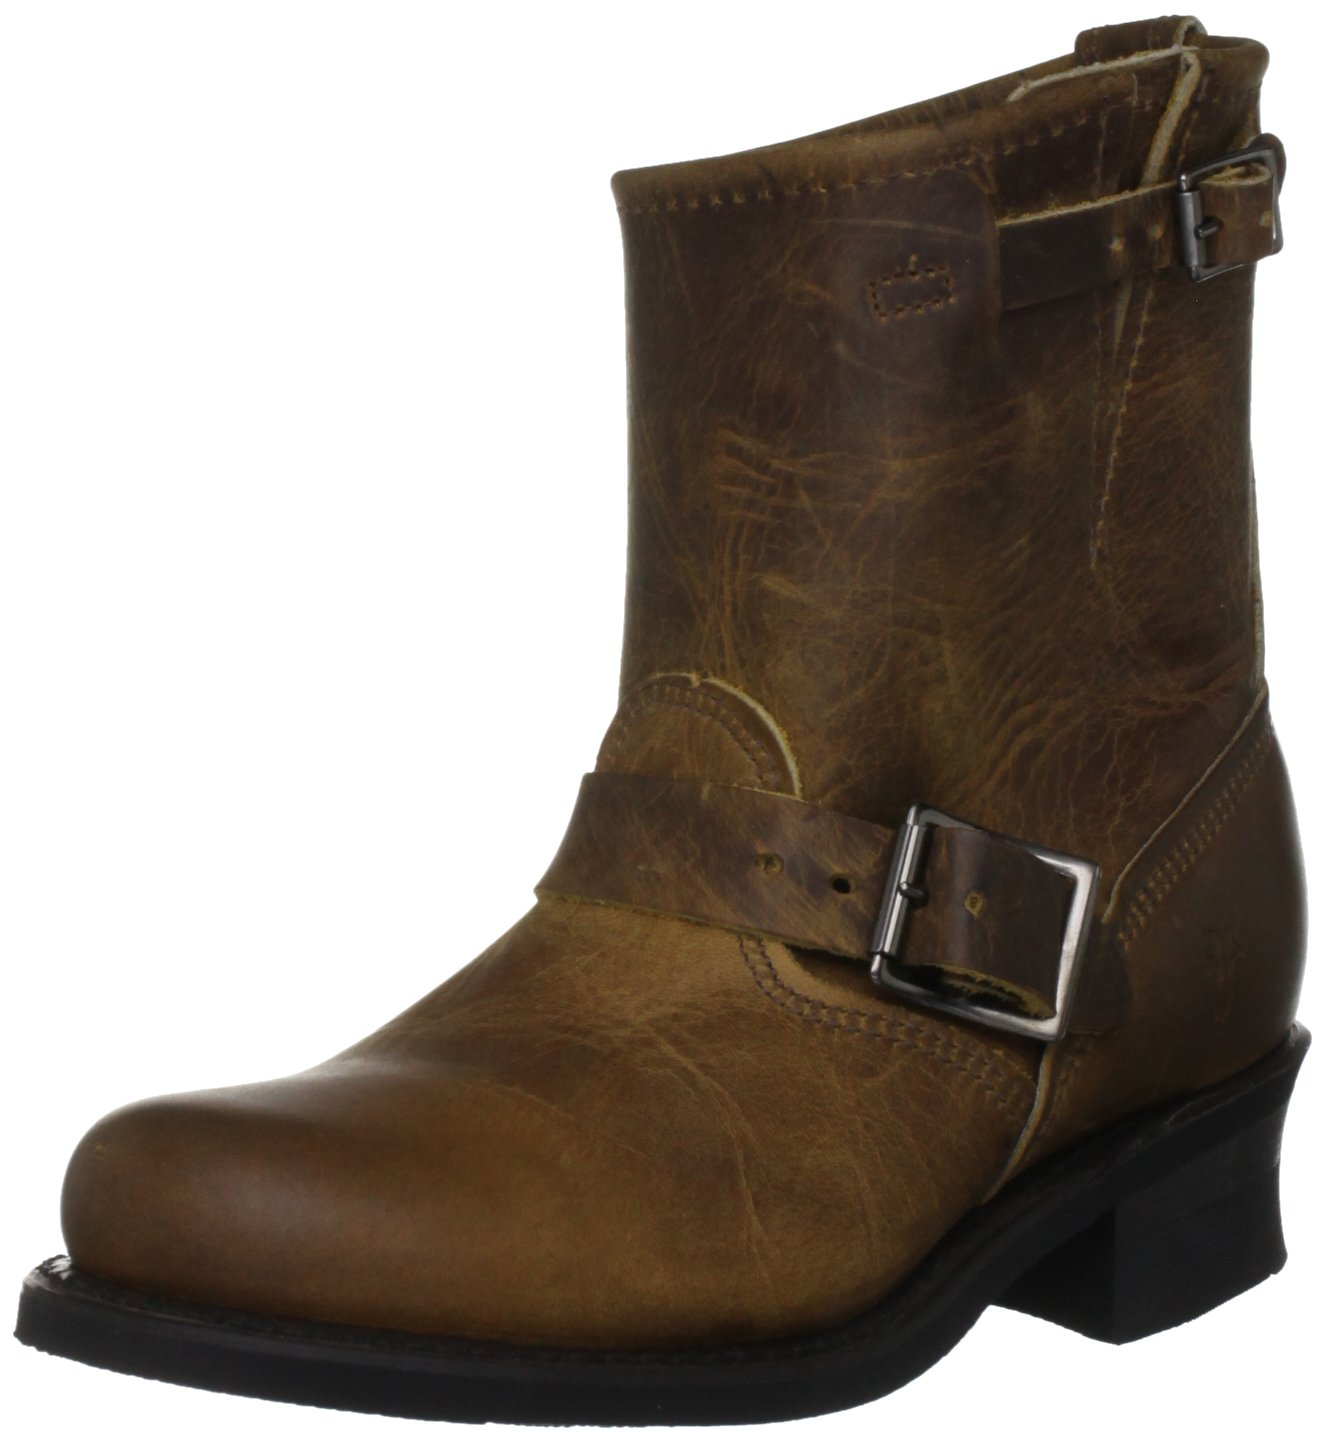 FRYE Women's Engineer 8R Ankle Boot B0059RP94Q 5.5 B(M) US|Dark Brown Old Town-77500